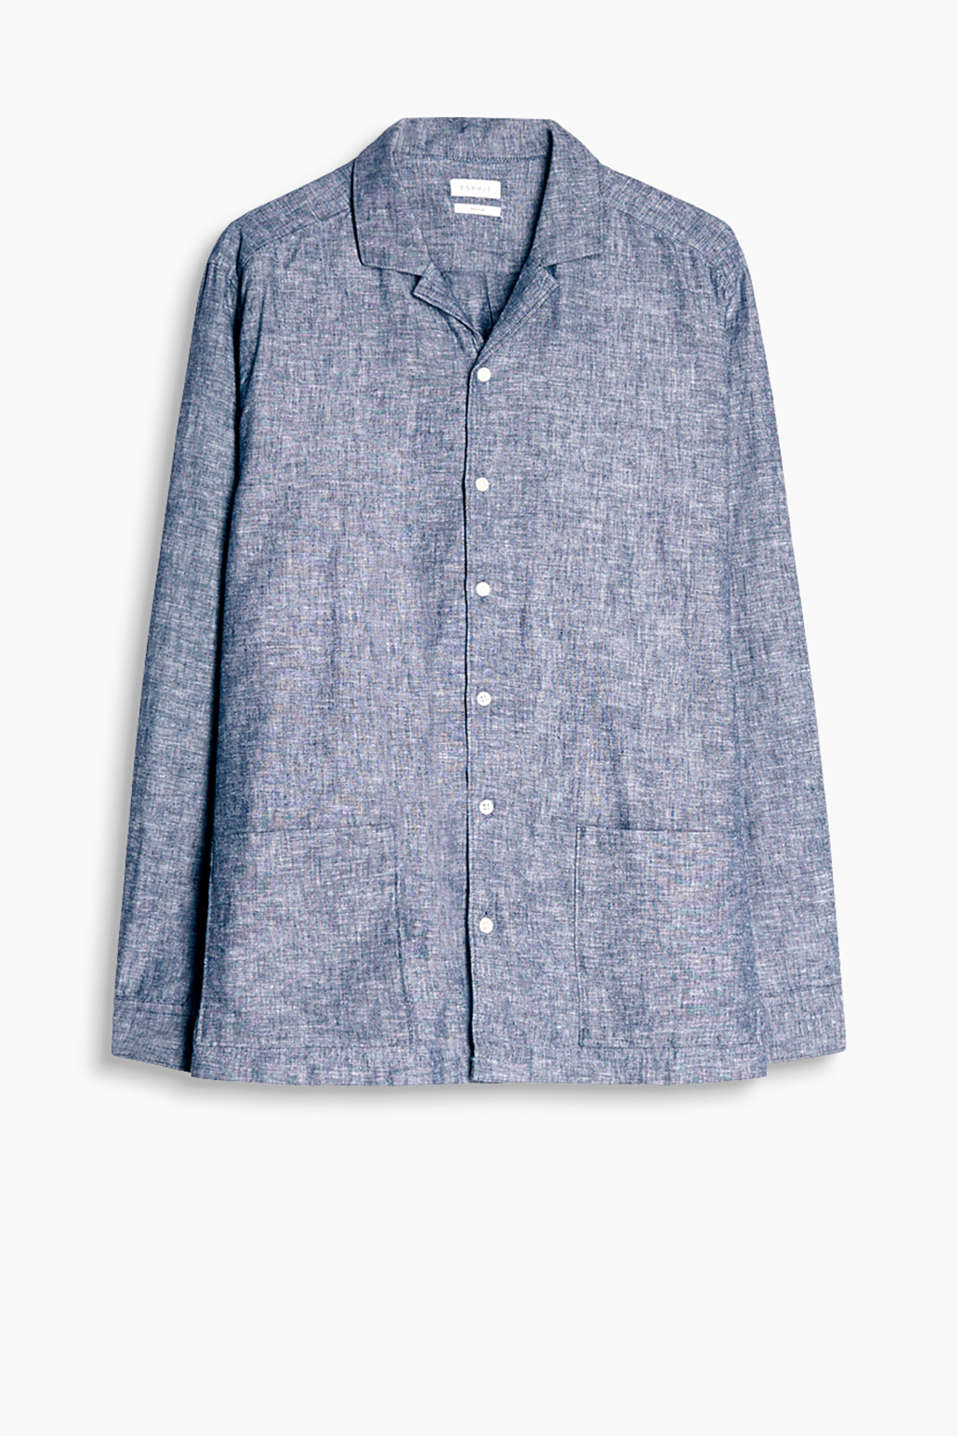 Cuban collar shirt in a soft, melange cotton-linen blend